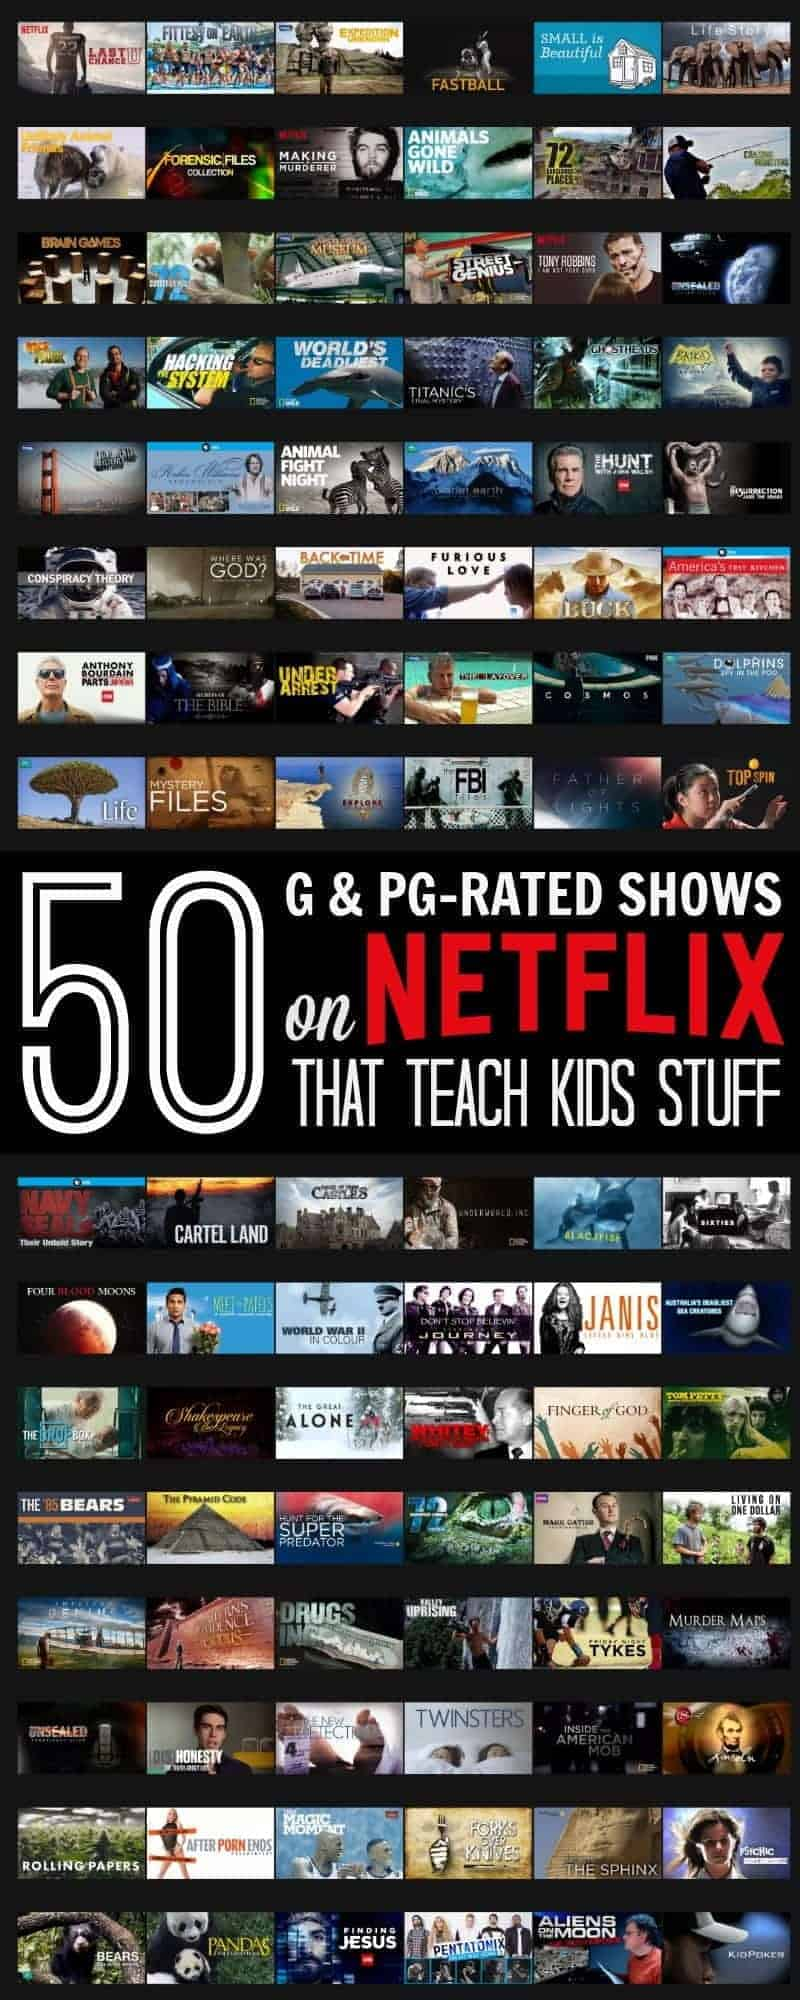 What I learned on Netflix - 50 G & PG-rated Shows that Actually Teach Kids Stuff - when your kids are stuck indoors Netflix can help you entertain them and keep them learning at the same time (without them really realizing it).